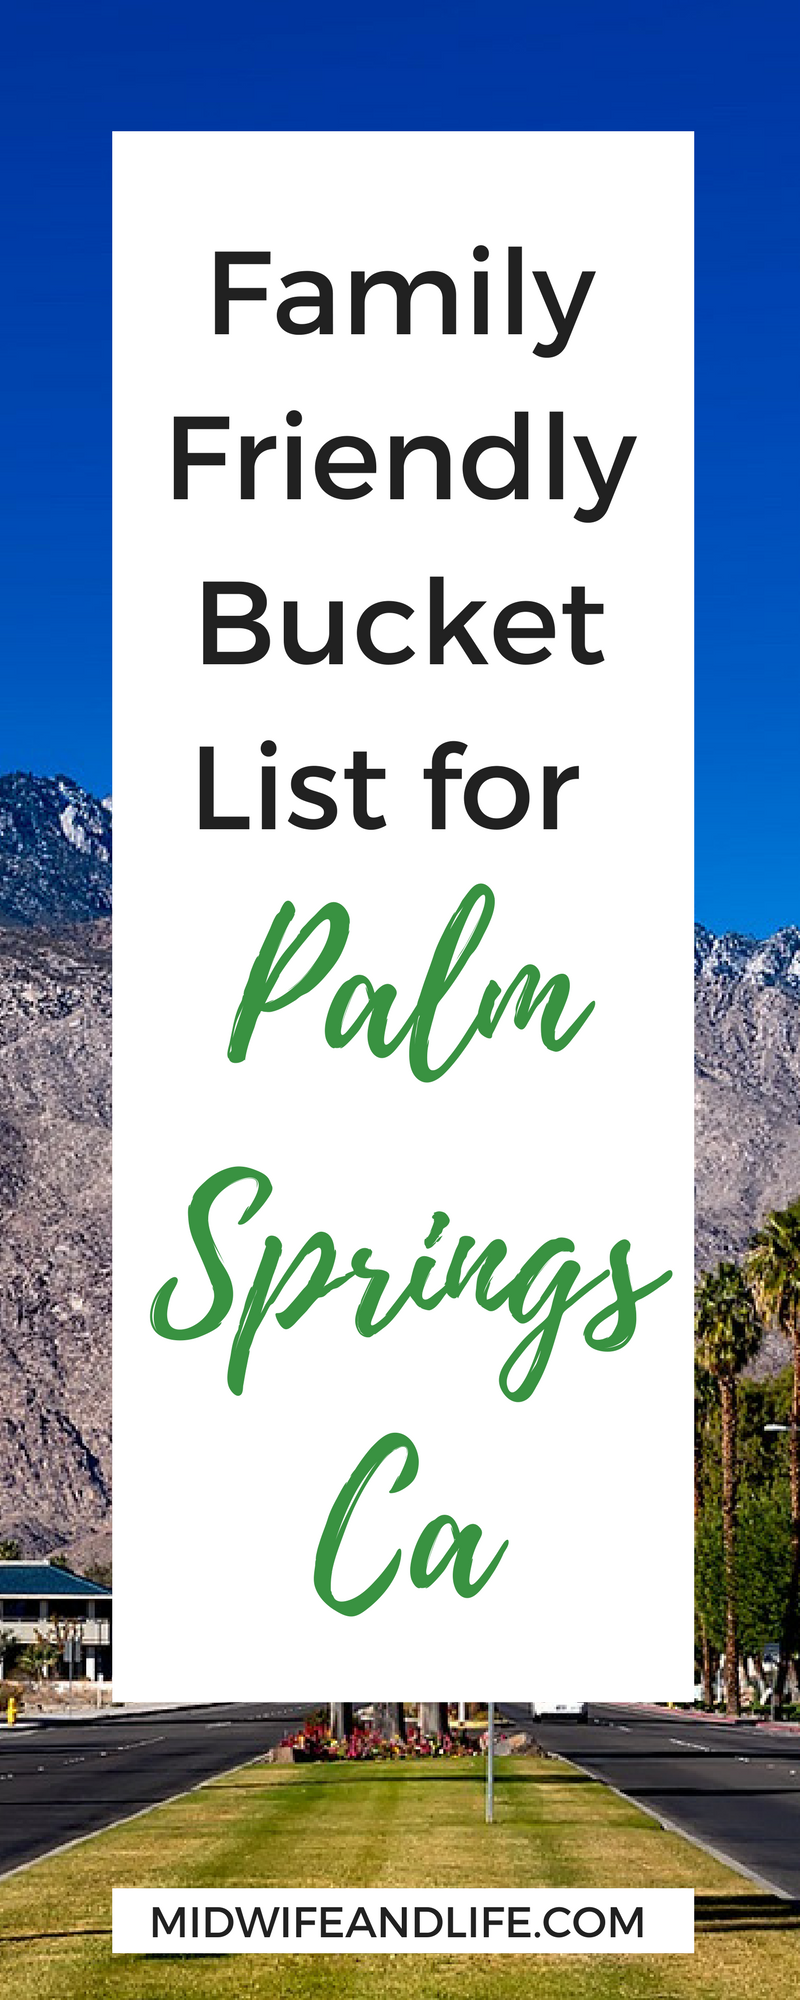 Are you looking to vacation in Palm Springs with your family? Looking for things to do? This list takes you through things to do for every member of the family plus insider tips!